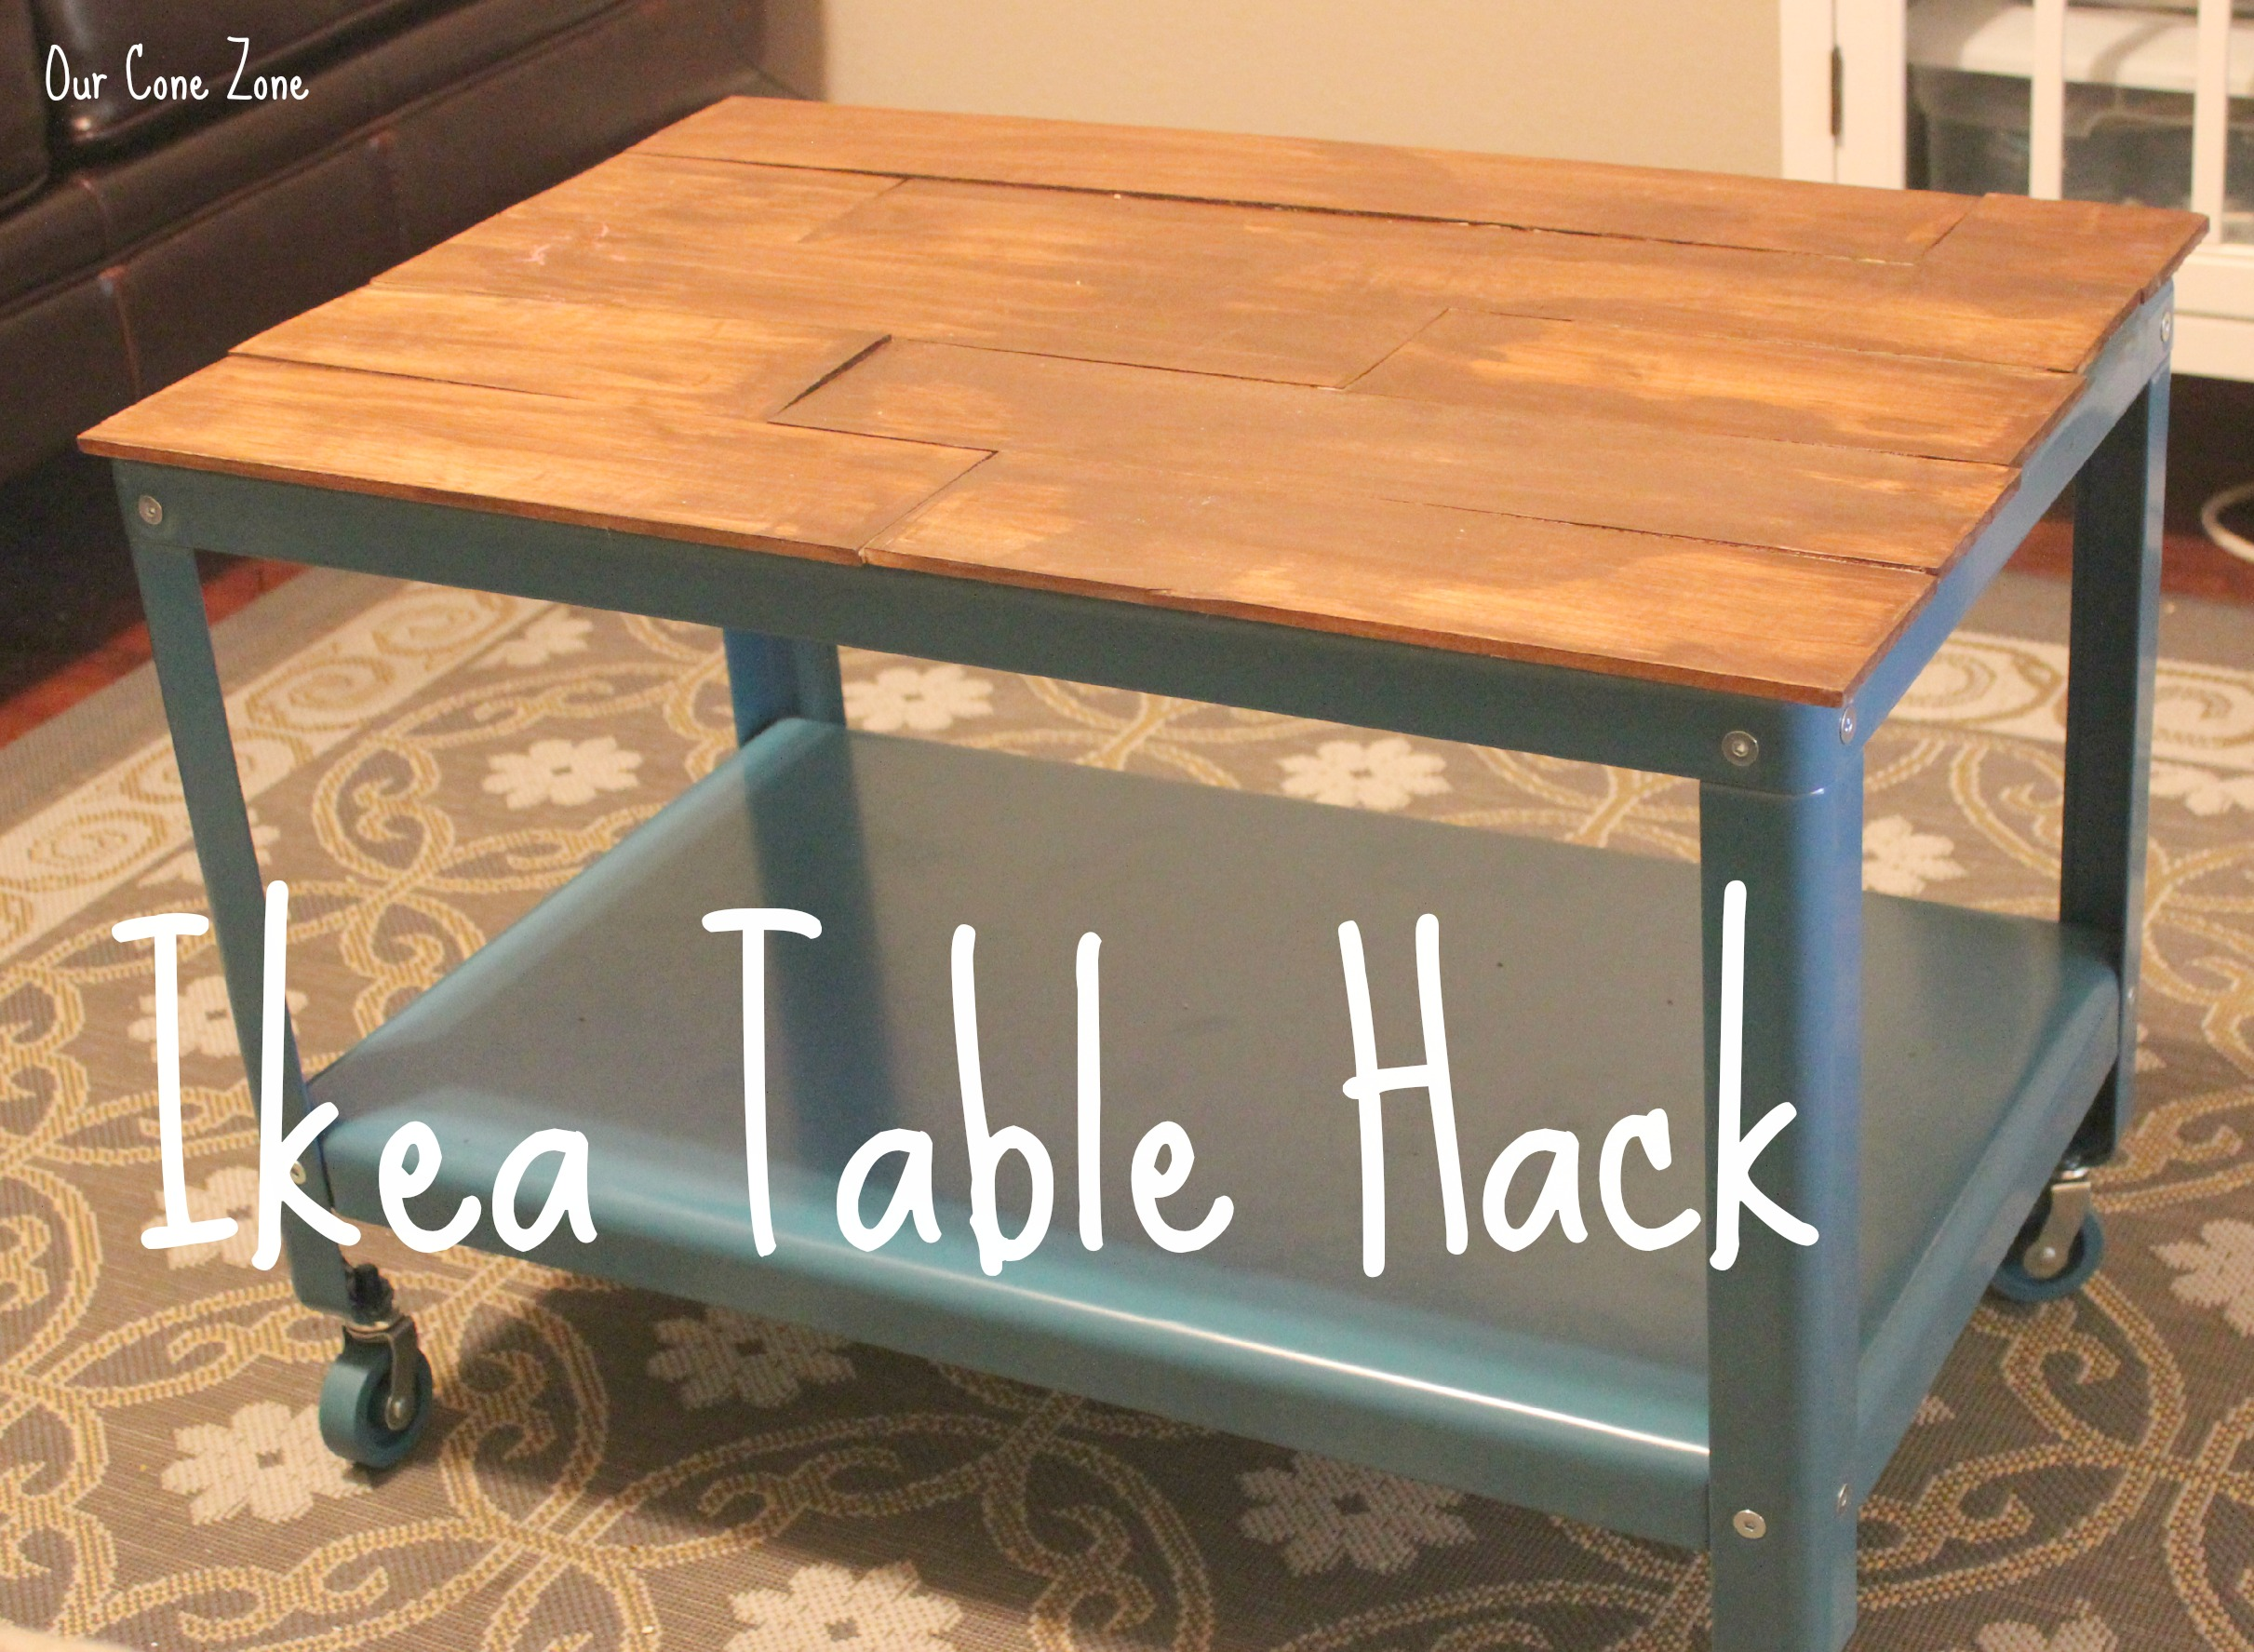 ikea coffee table hack our cone zone rh ourconezone com